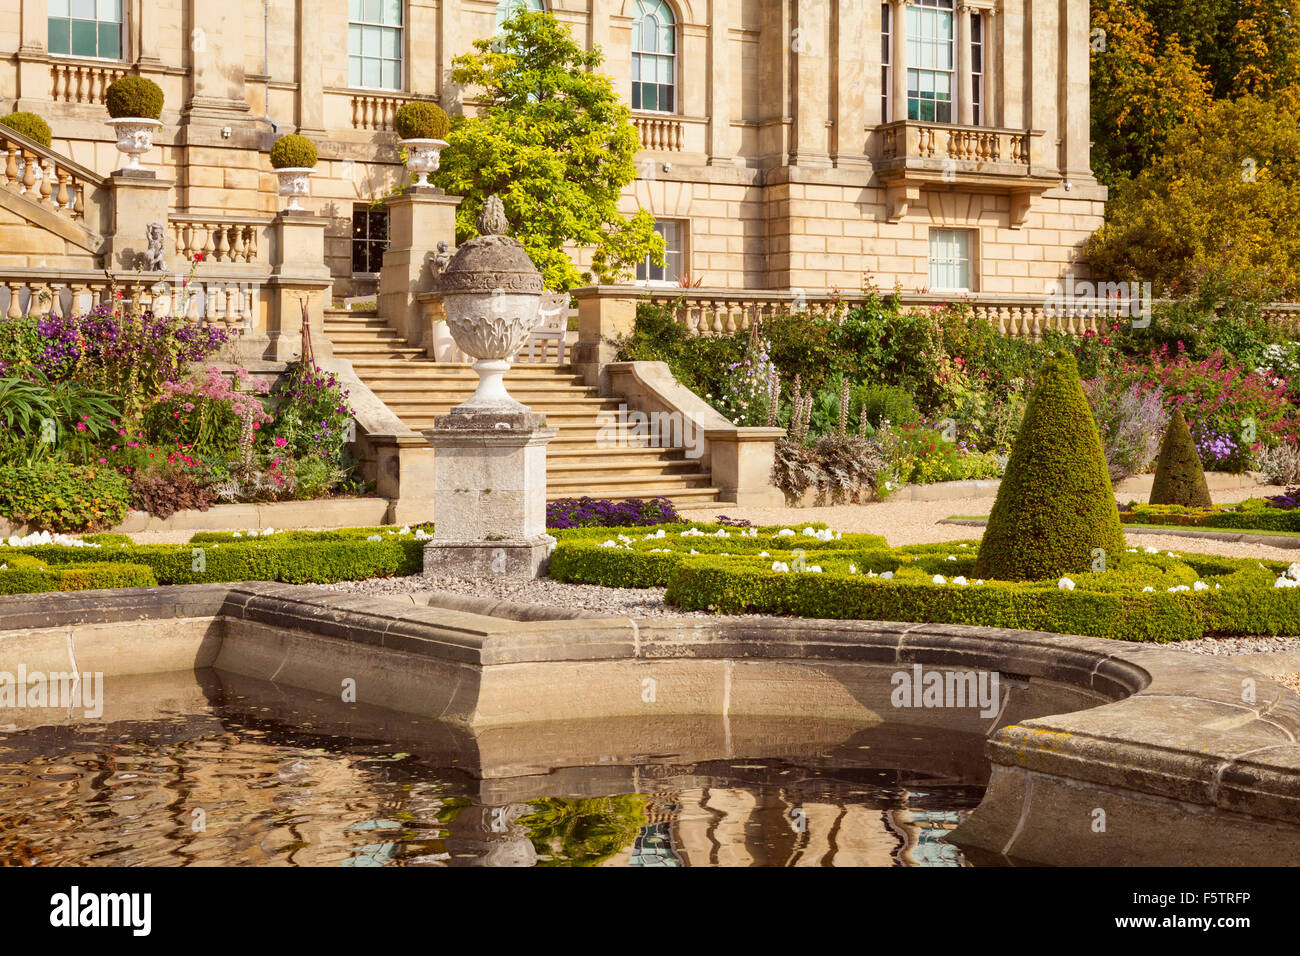 The Terrace Garden at Harewood House in West Yorkshire, UK. One of ...